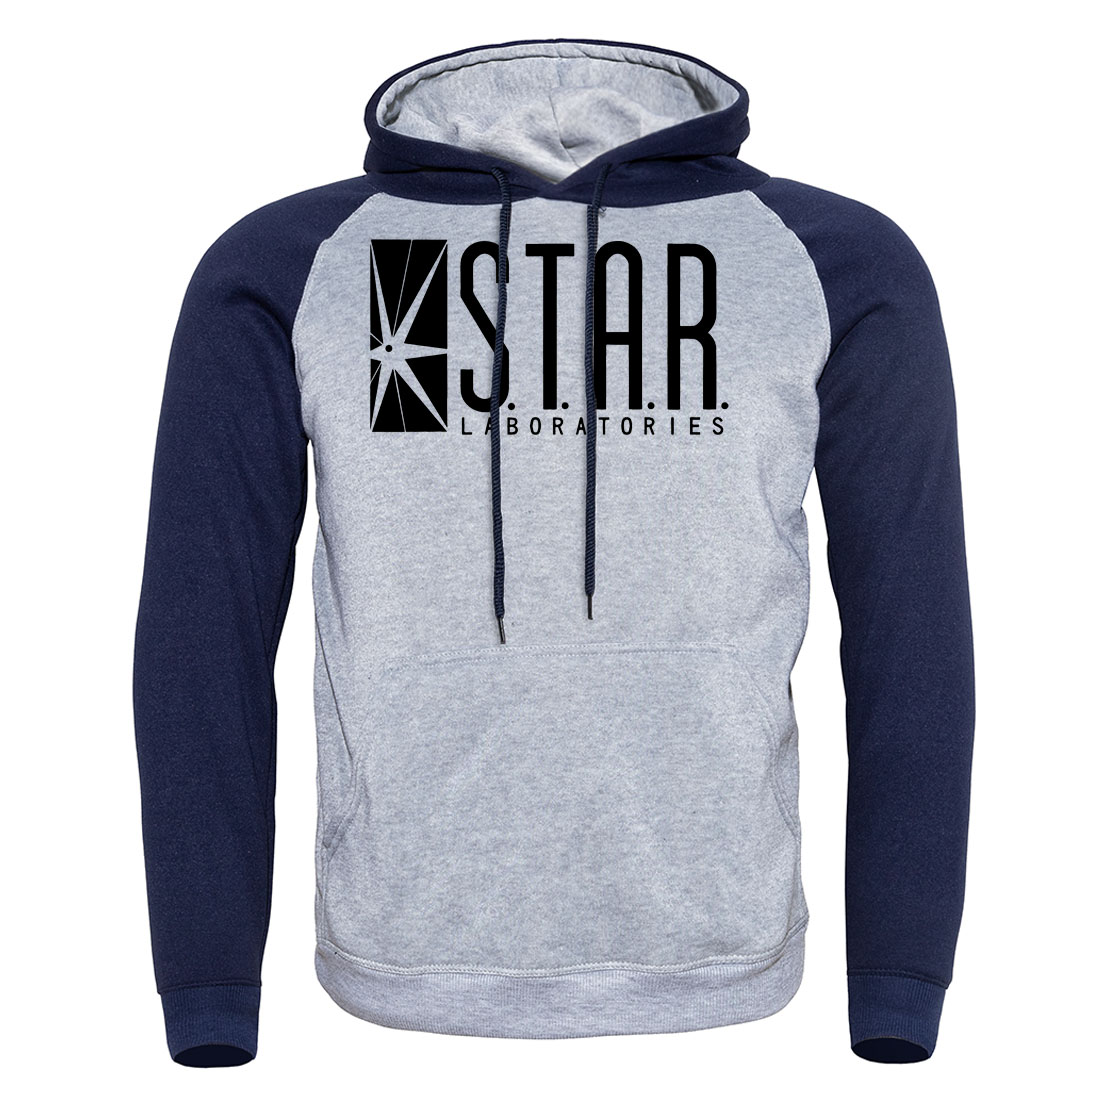 STAR S.T.A.R.labs Printed Fashion Casual Hoody For Men 2019 Autumn Sweatshirts  Raglan Hoodie Hoodies Men's Sportswear Pullover